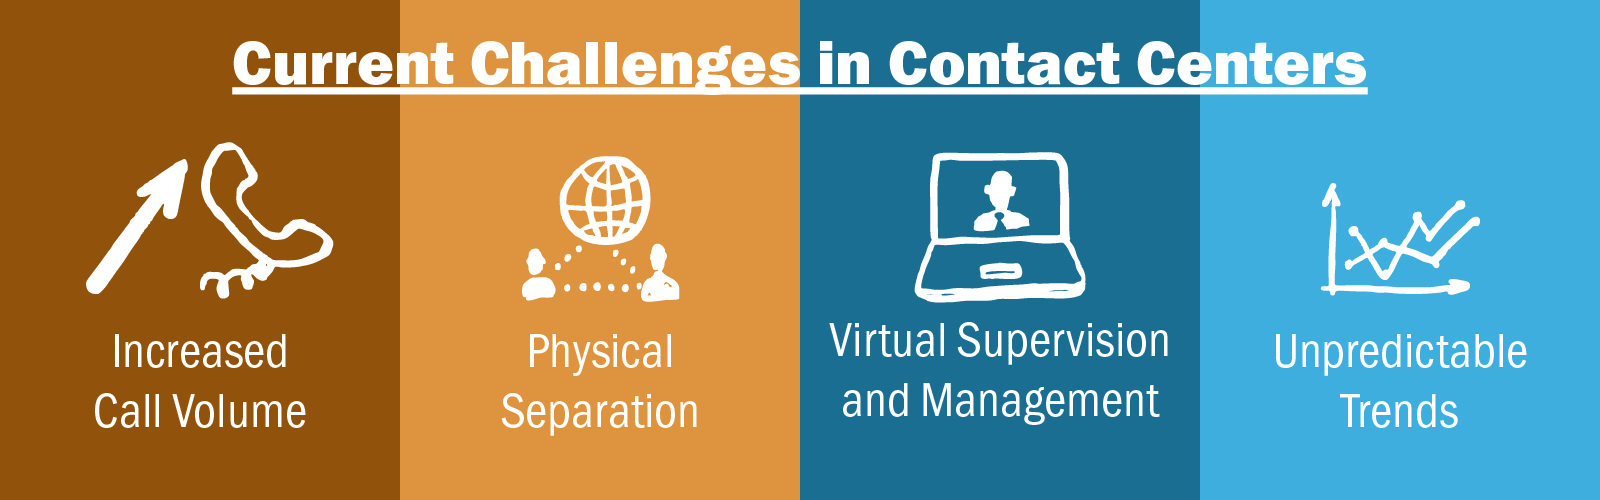 Contact Center Challenges Increased Call Volume Physical Separation Virtual Supervision and Management Unpredictable Trends